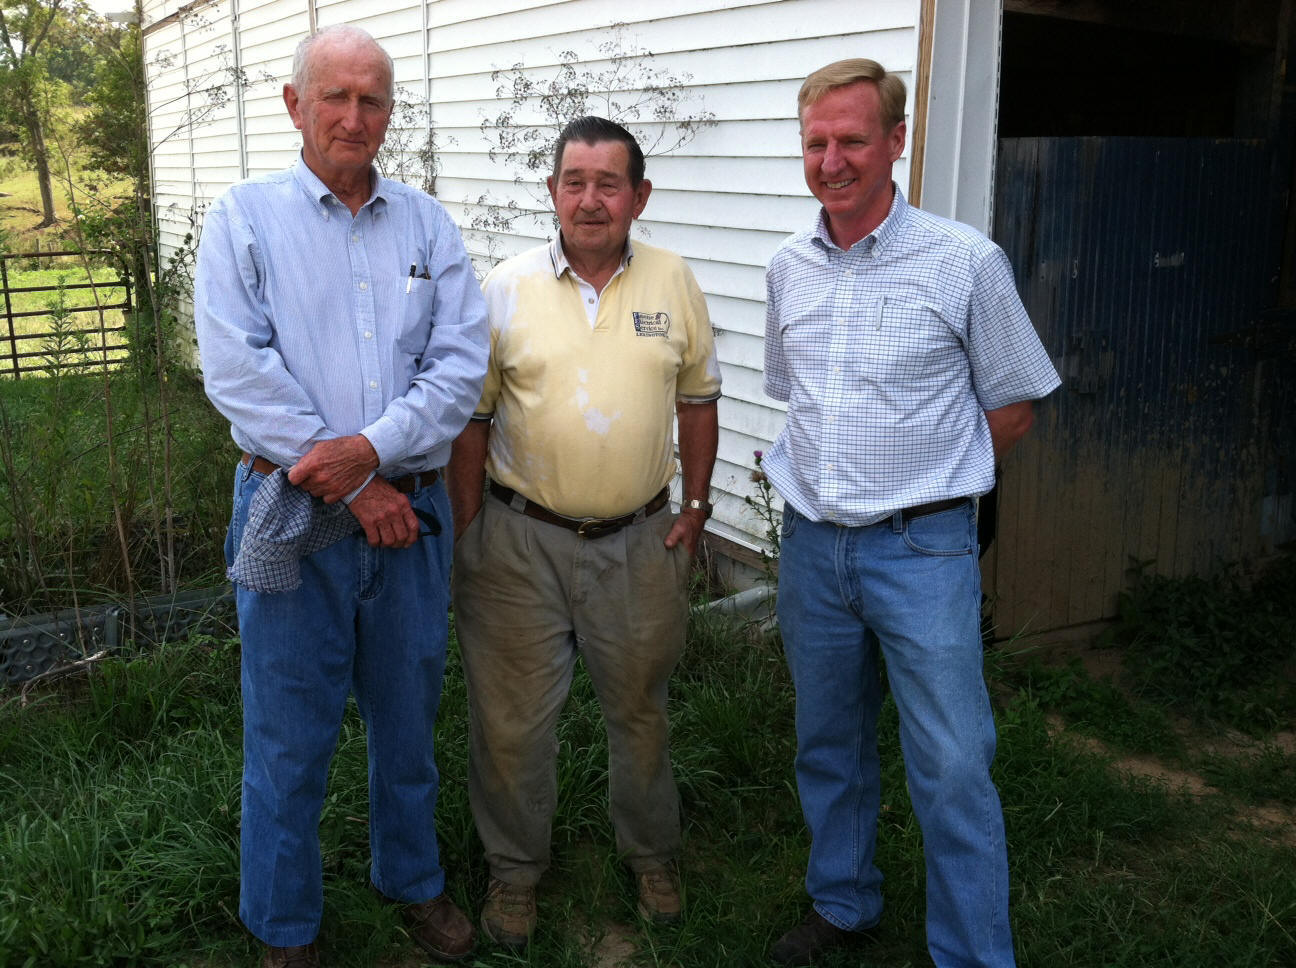 Geologist Paul Howell, Landowner Joe Kiser, and District Conservationist Charles Farmer